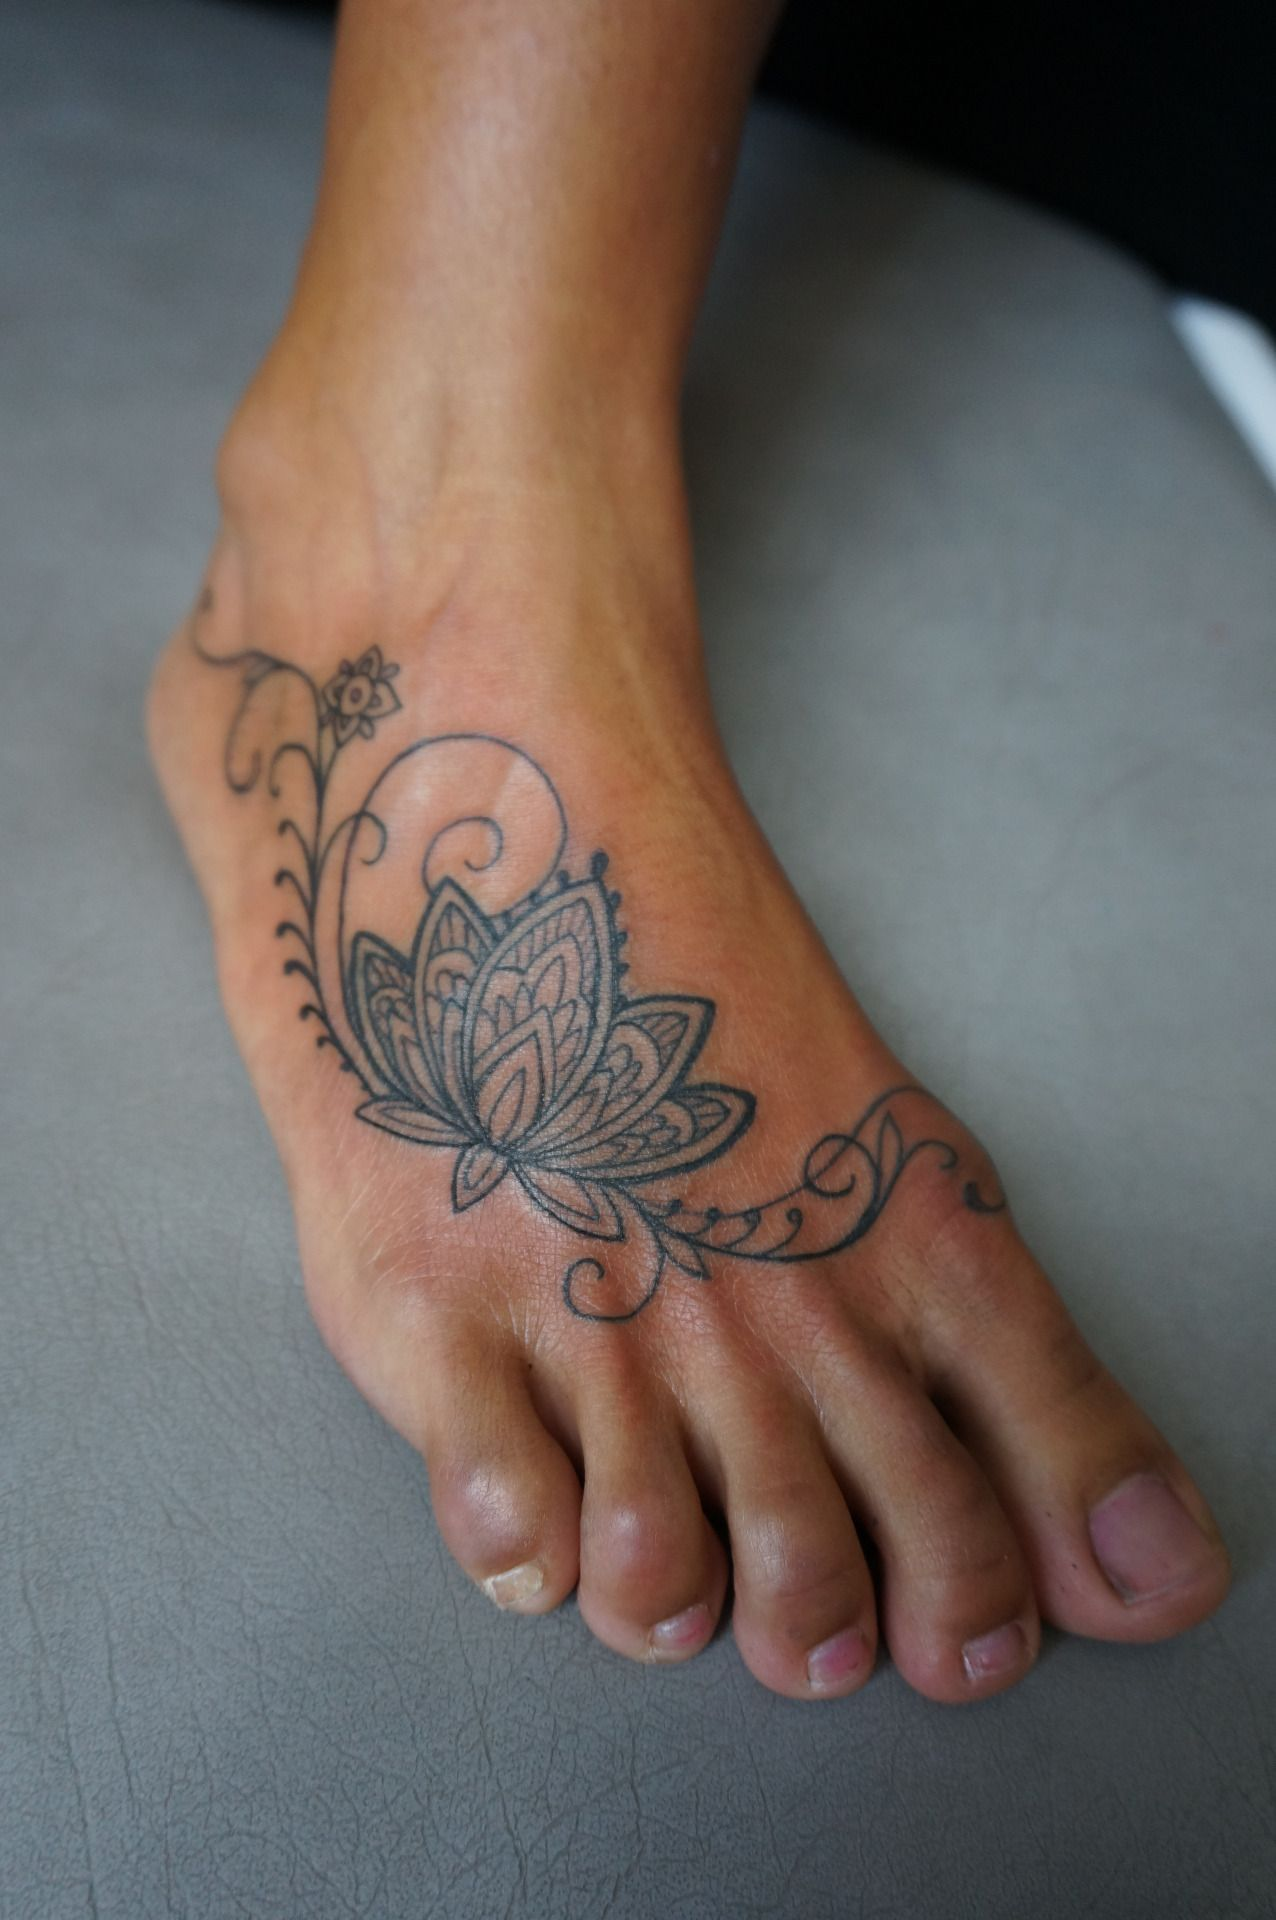 Henna Tattoo On Foot: This Tattoo Reminded Me Of The Time I Used To Do Henna